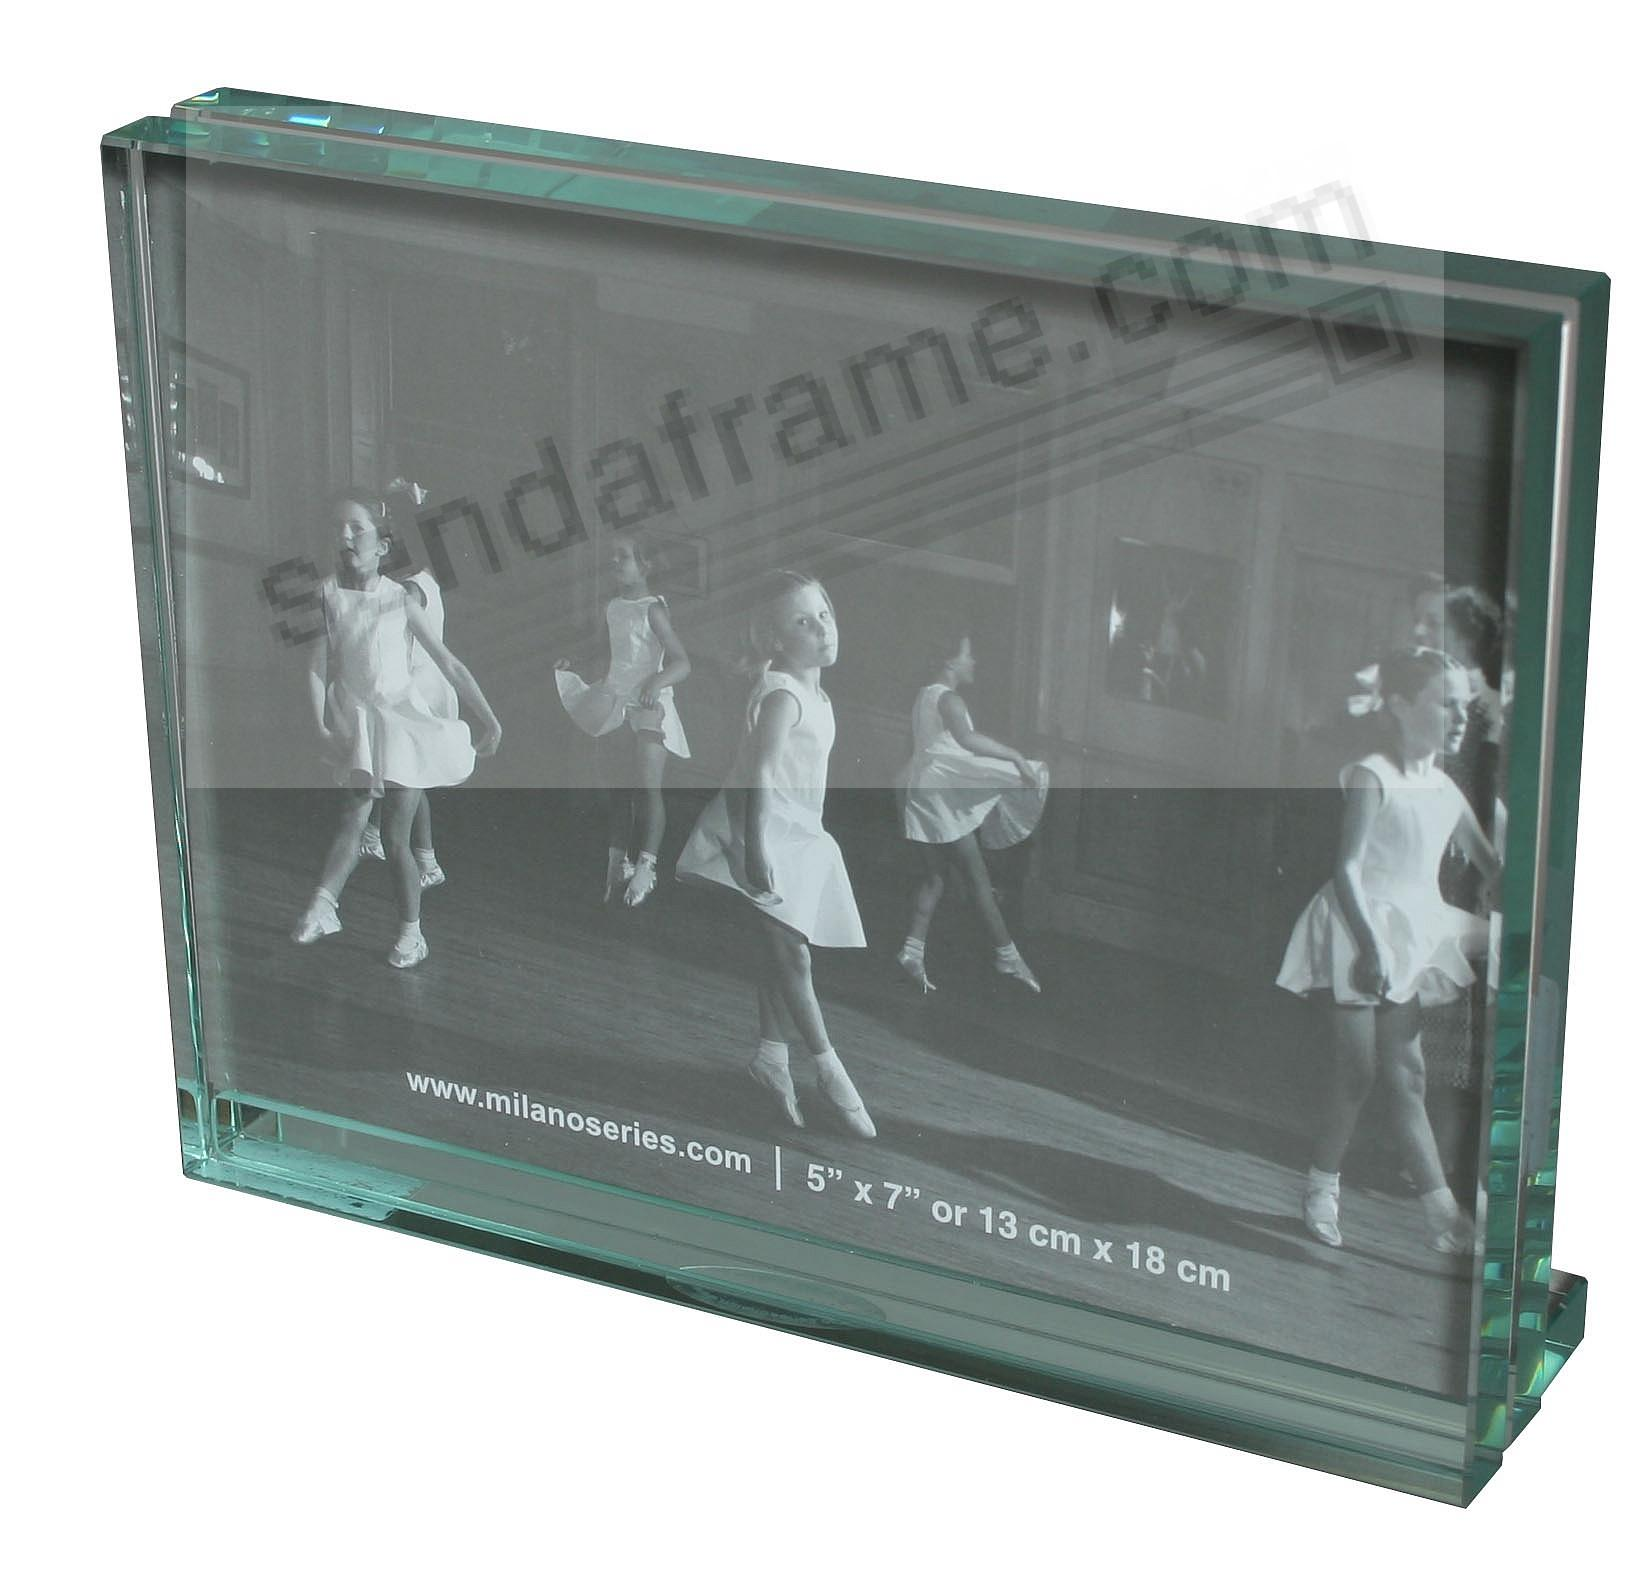 CLARITY Glass Block 5x7 Frame By Milano Series